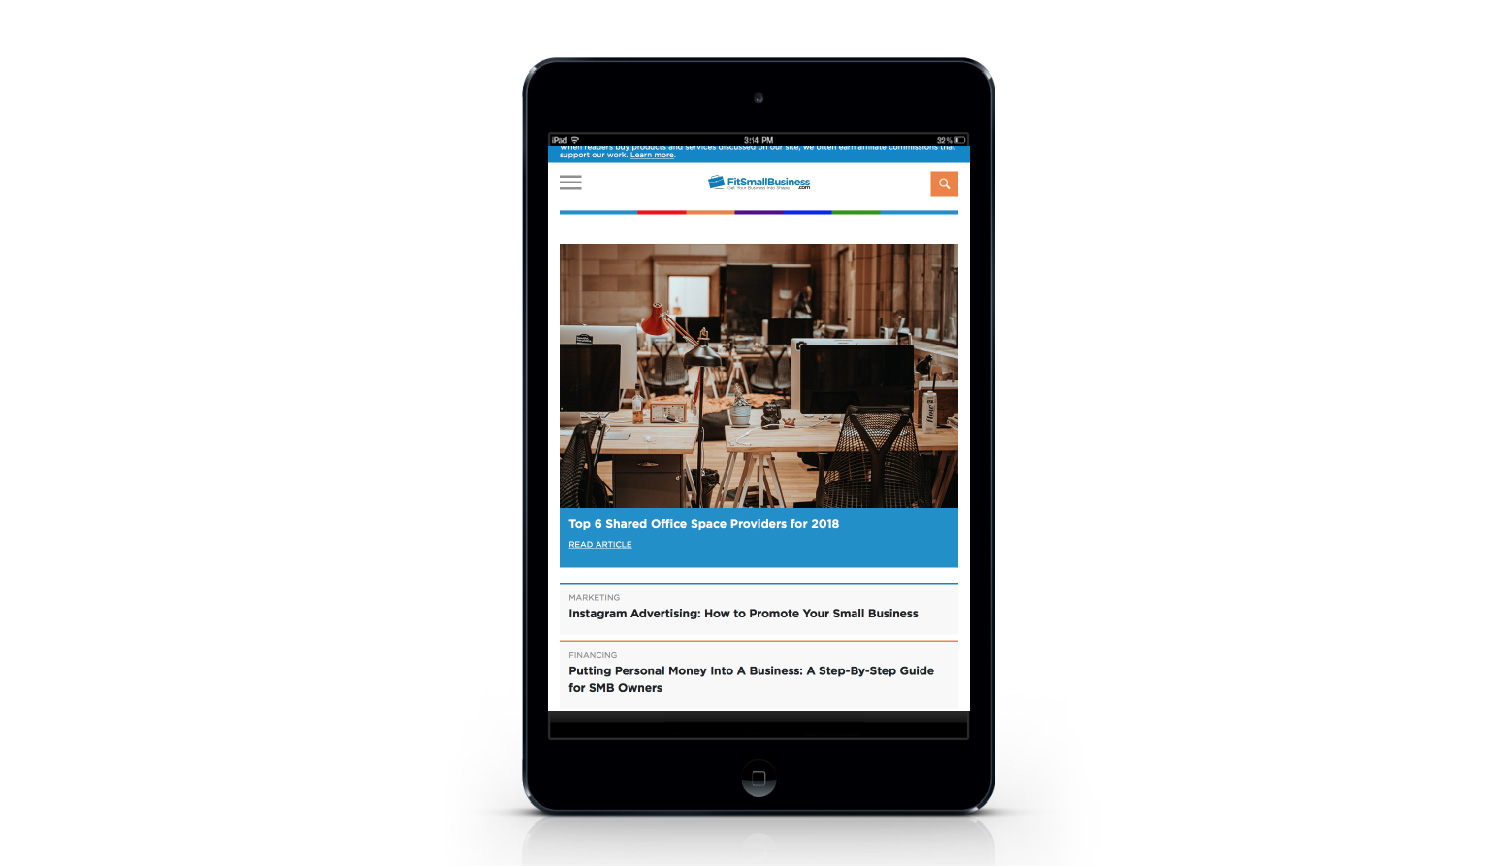 Fit Small Business tablet view